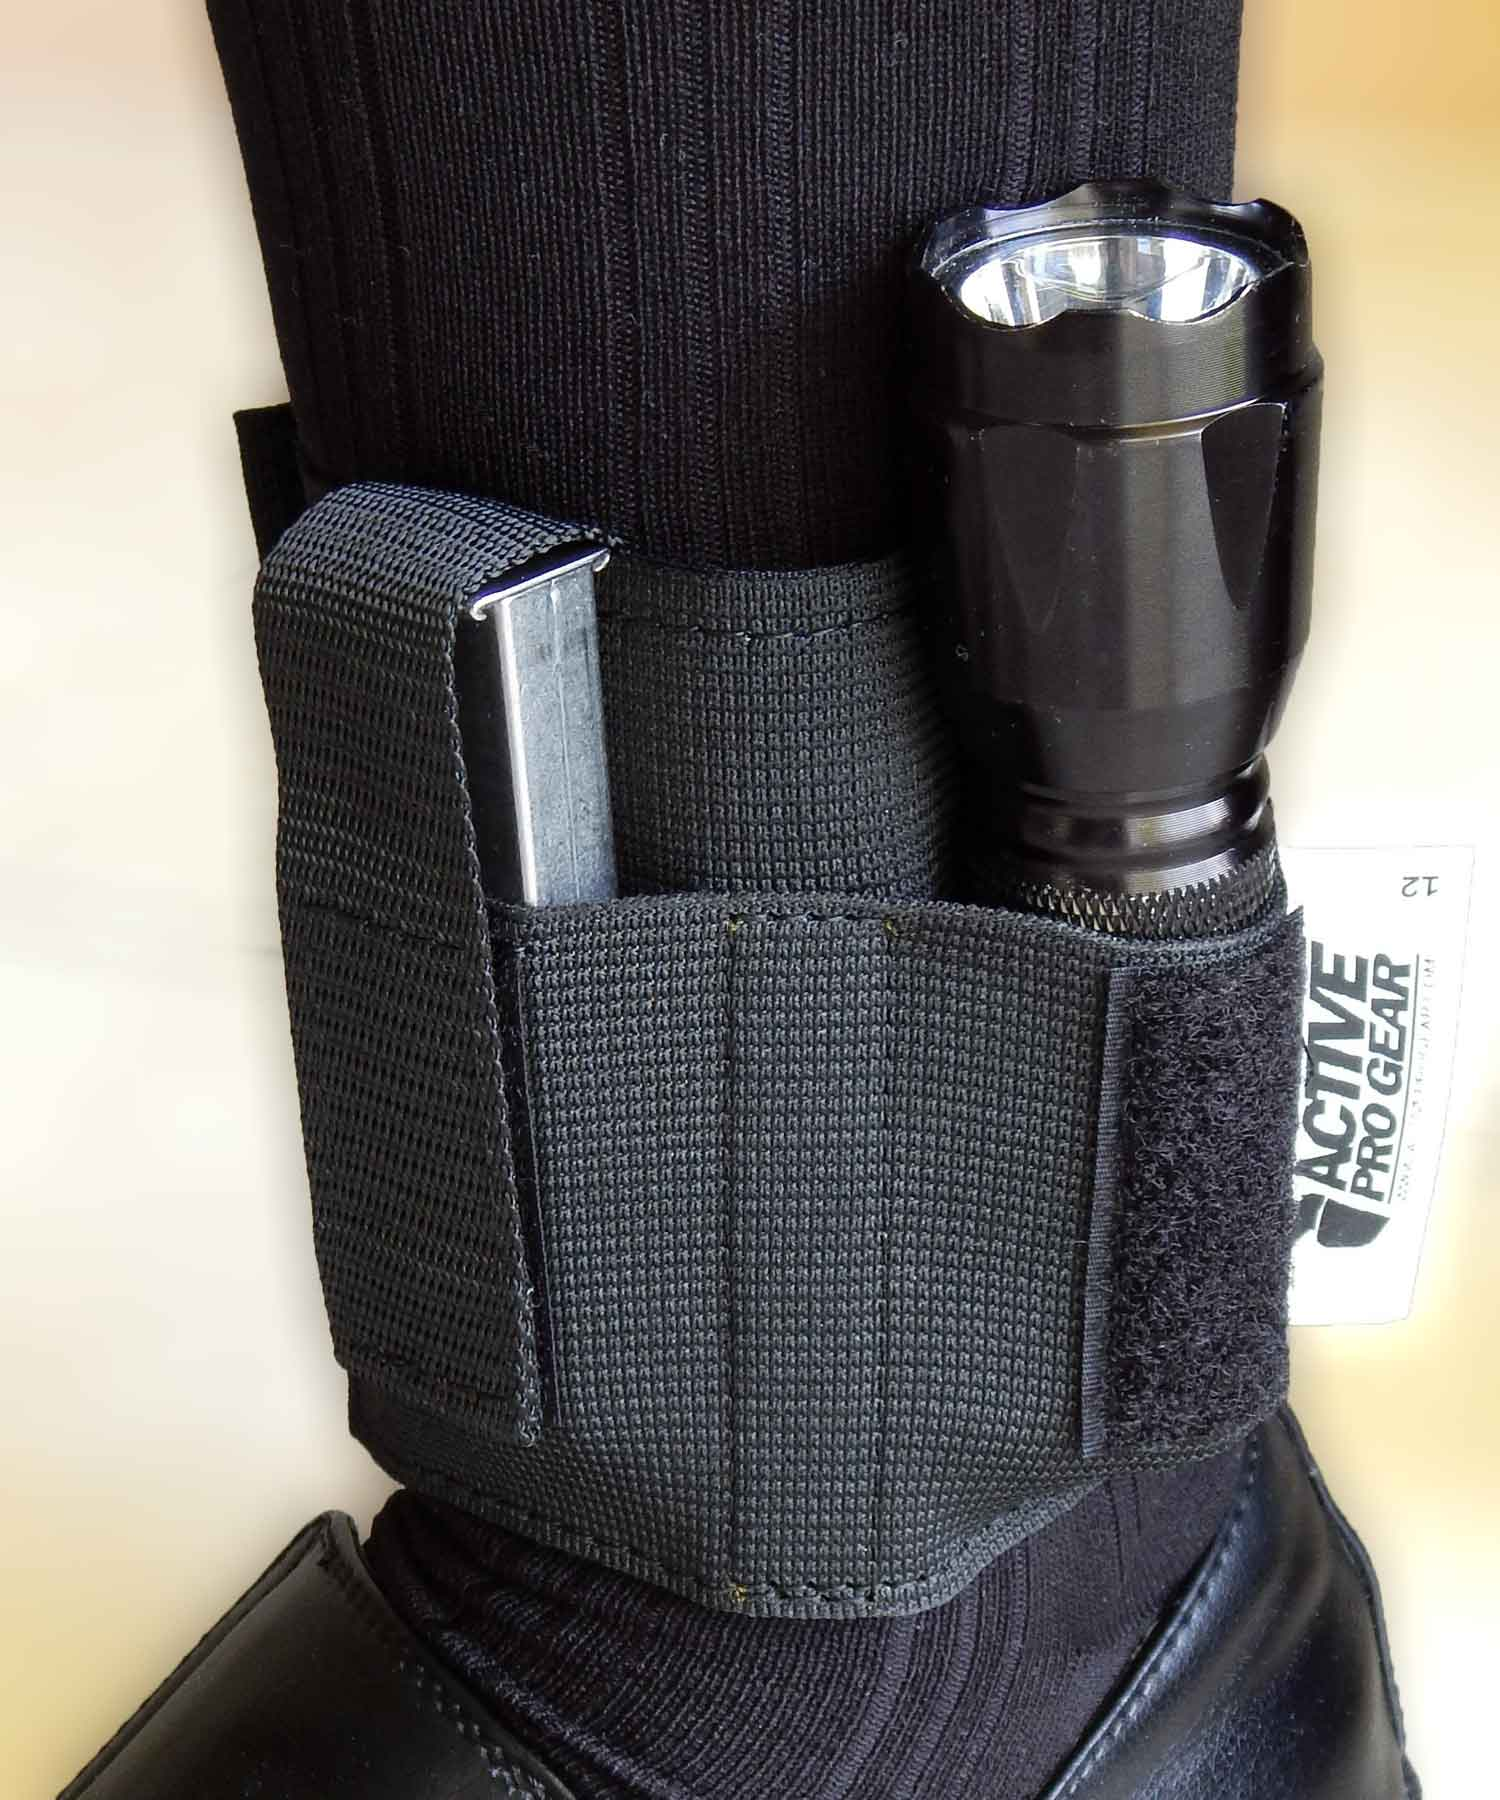 Model 12 Ankle Magazine/Tool Carrier with Flashlight